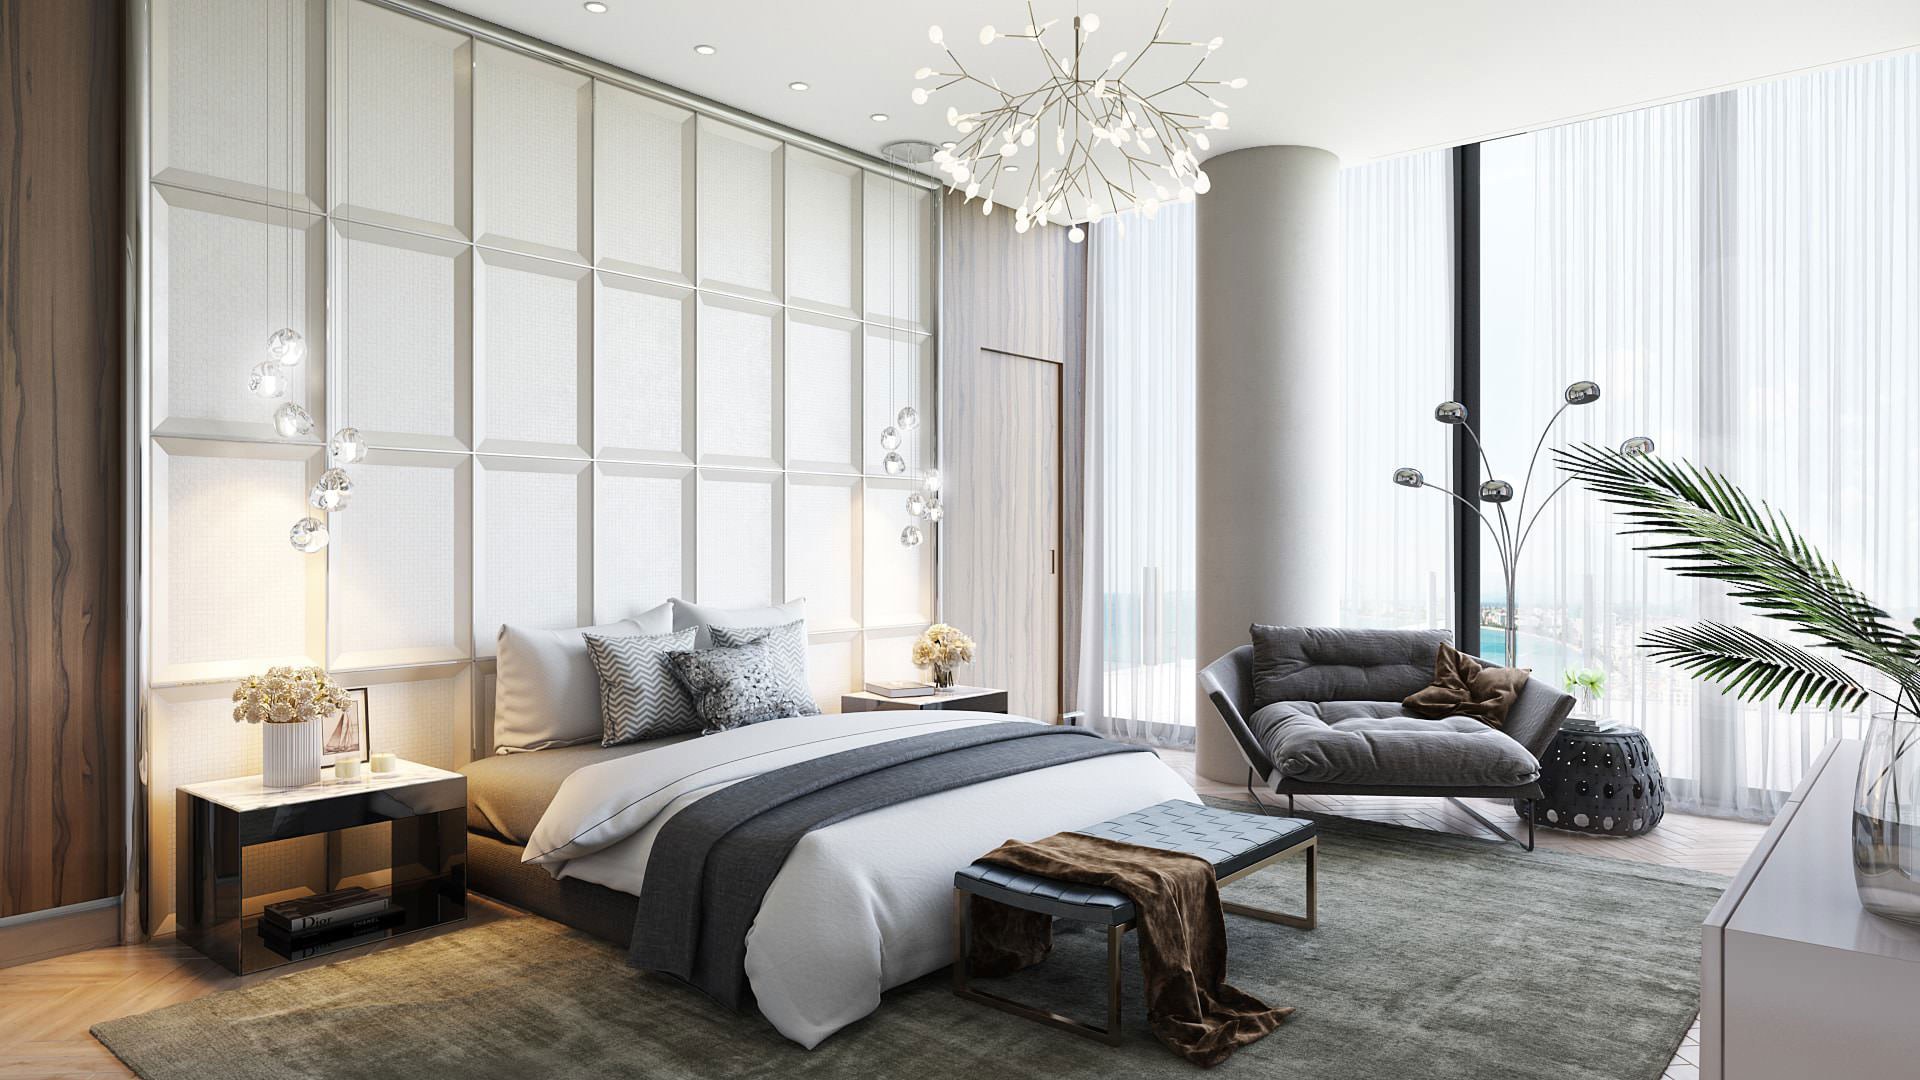 Rendering of a Cozy Bedroom with a Plenty of Furniture and Decor 3D Objects